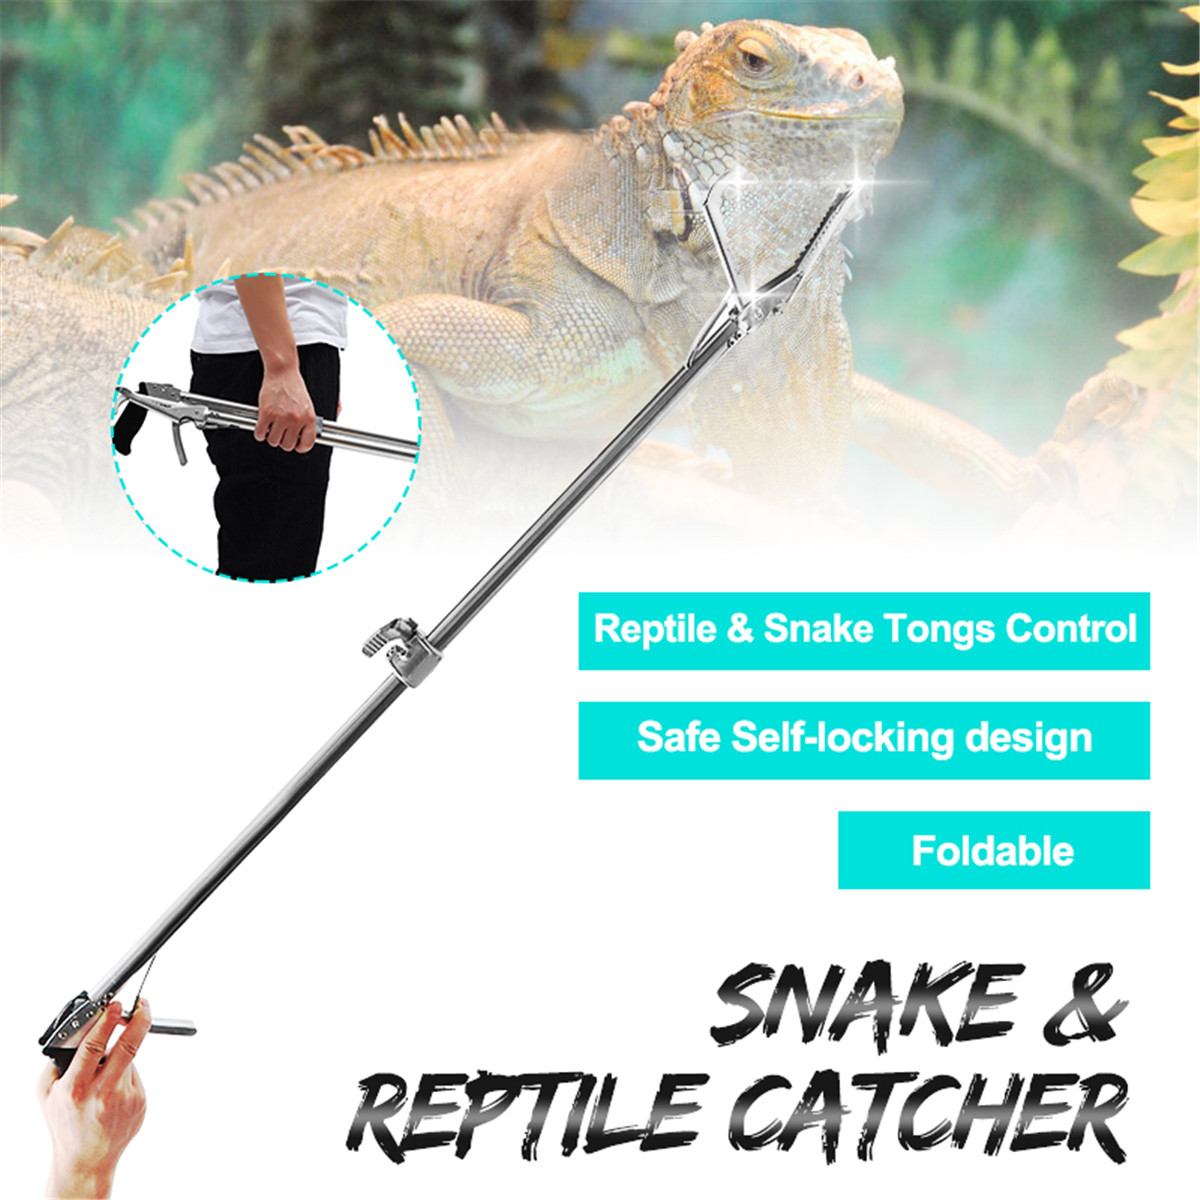 Foldable Reptile Snake Tongs Stick Grabber Snake Catcher Self Locking Wide Jaw Tool Heavy Duty Pest Control Product 120/100/75CM